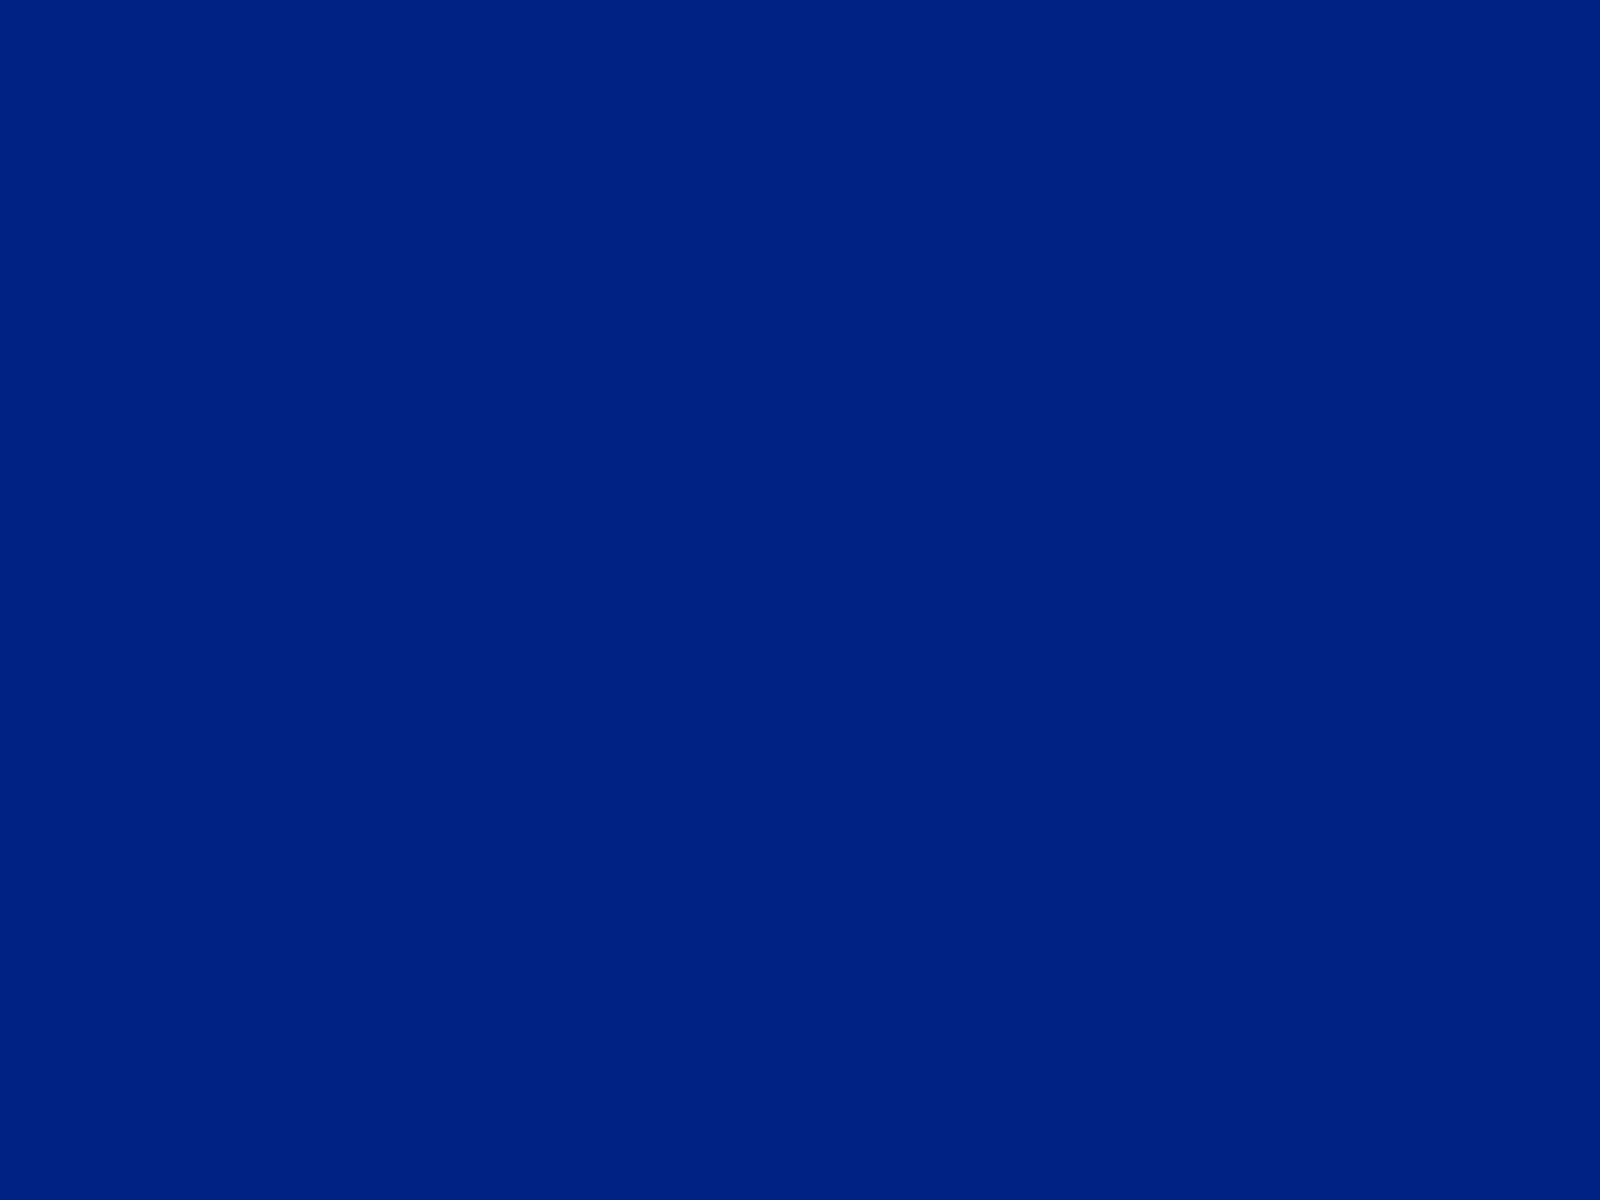 Free 1600x1200 resolution resolution blue solid color background view